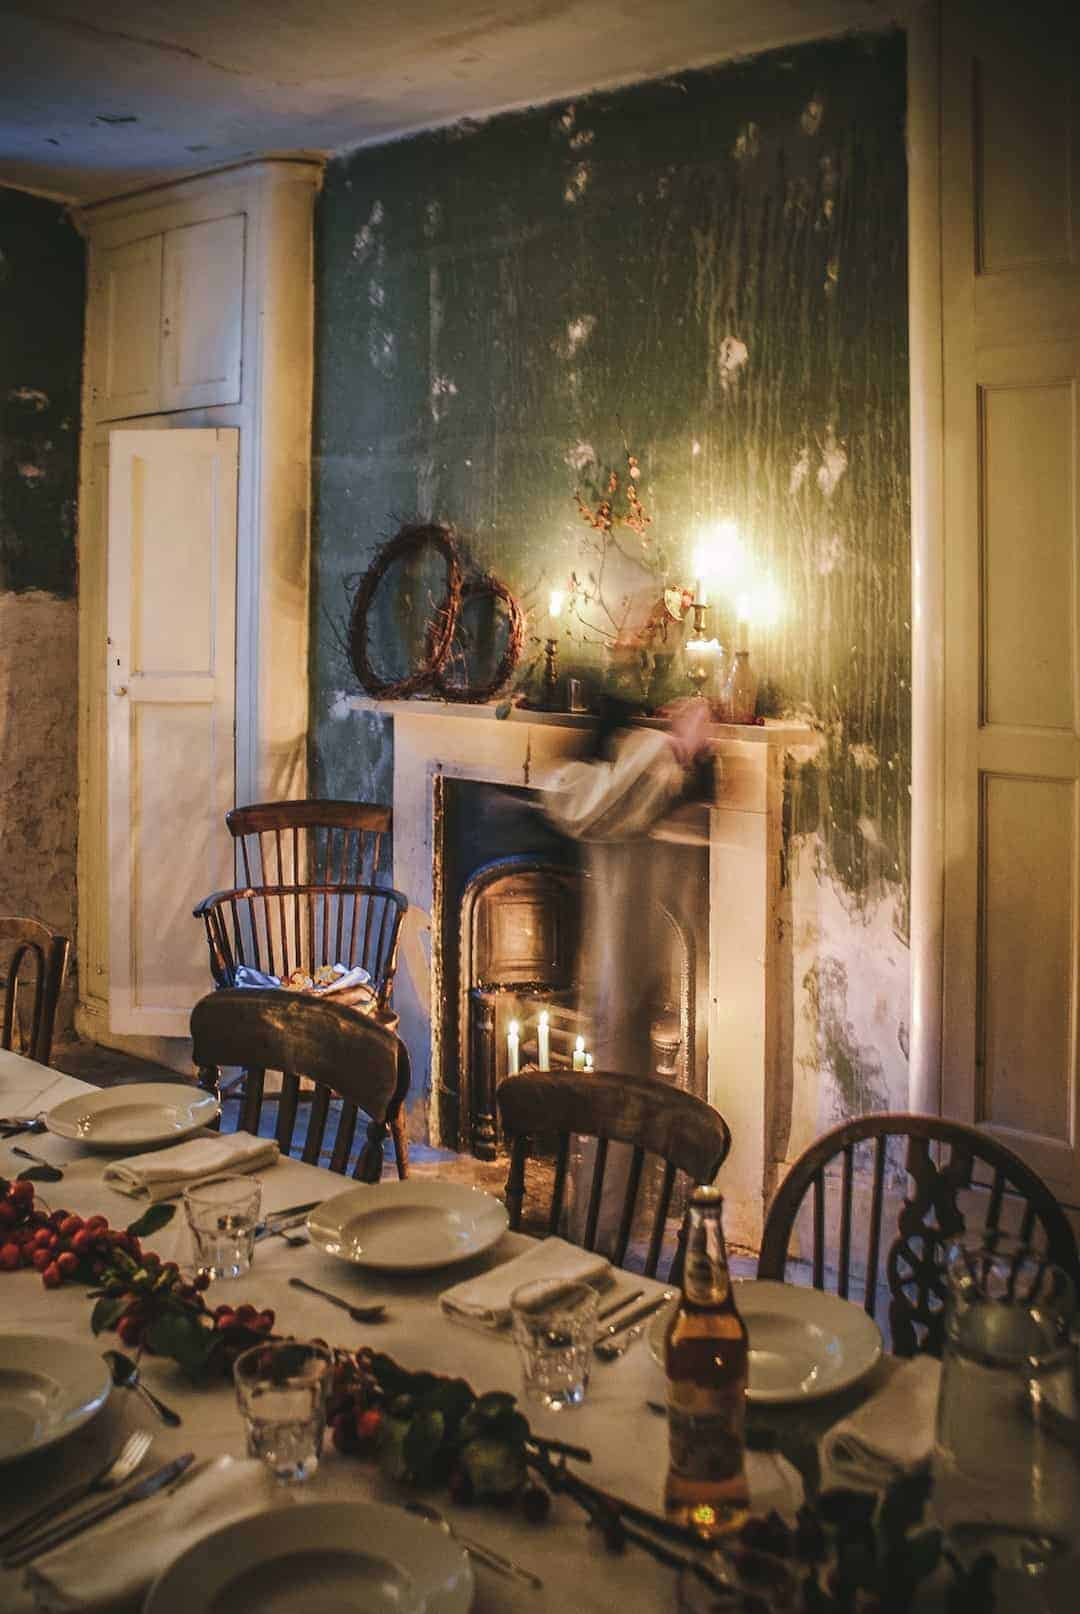 love this image at The Regency Townhouse in Hove with candlelight and a magical feel at the launch of Conscious Creativity by Philippa Stanton aka @5ftinf click through for a peek inside as well as more image of the workshop and the day